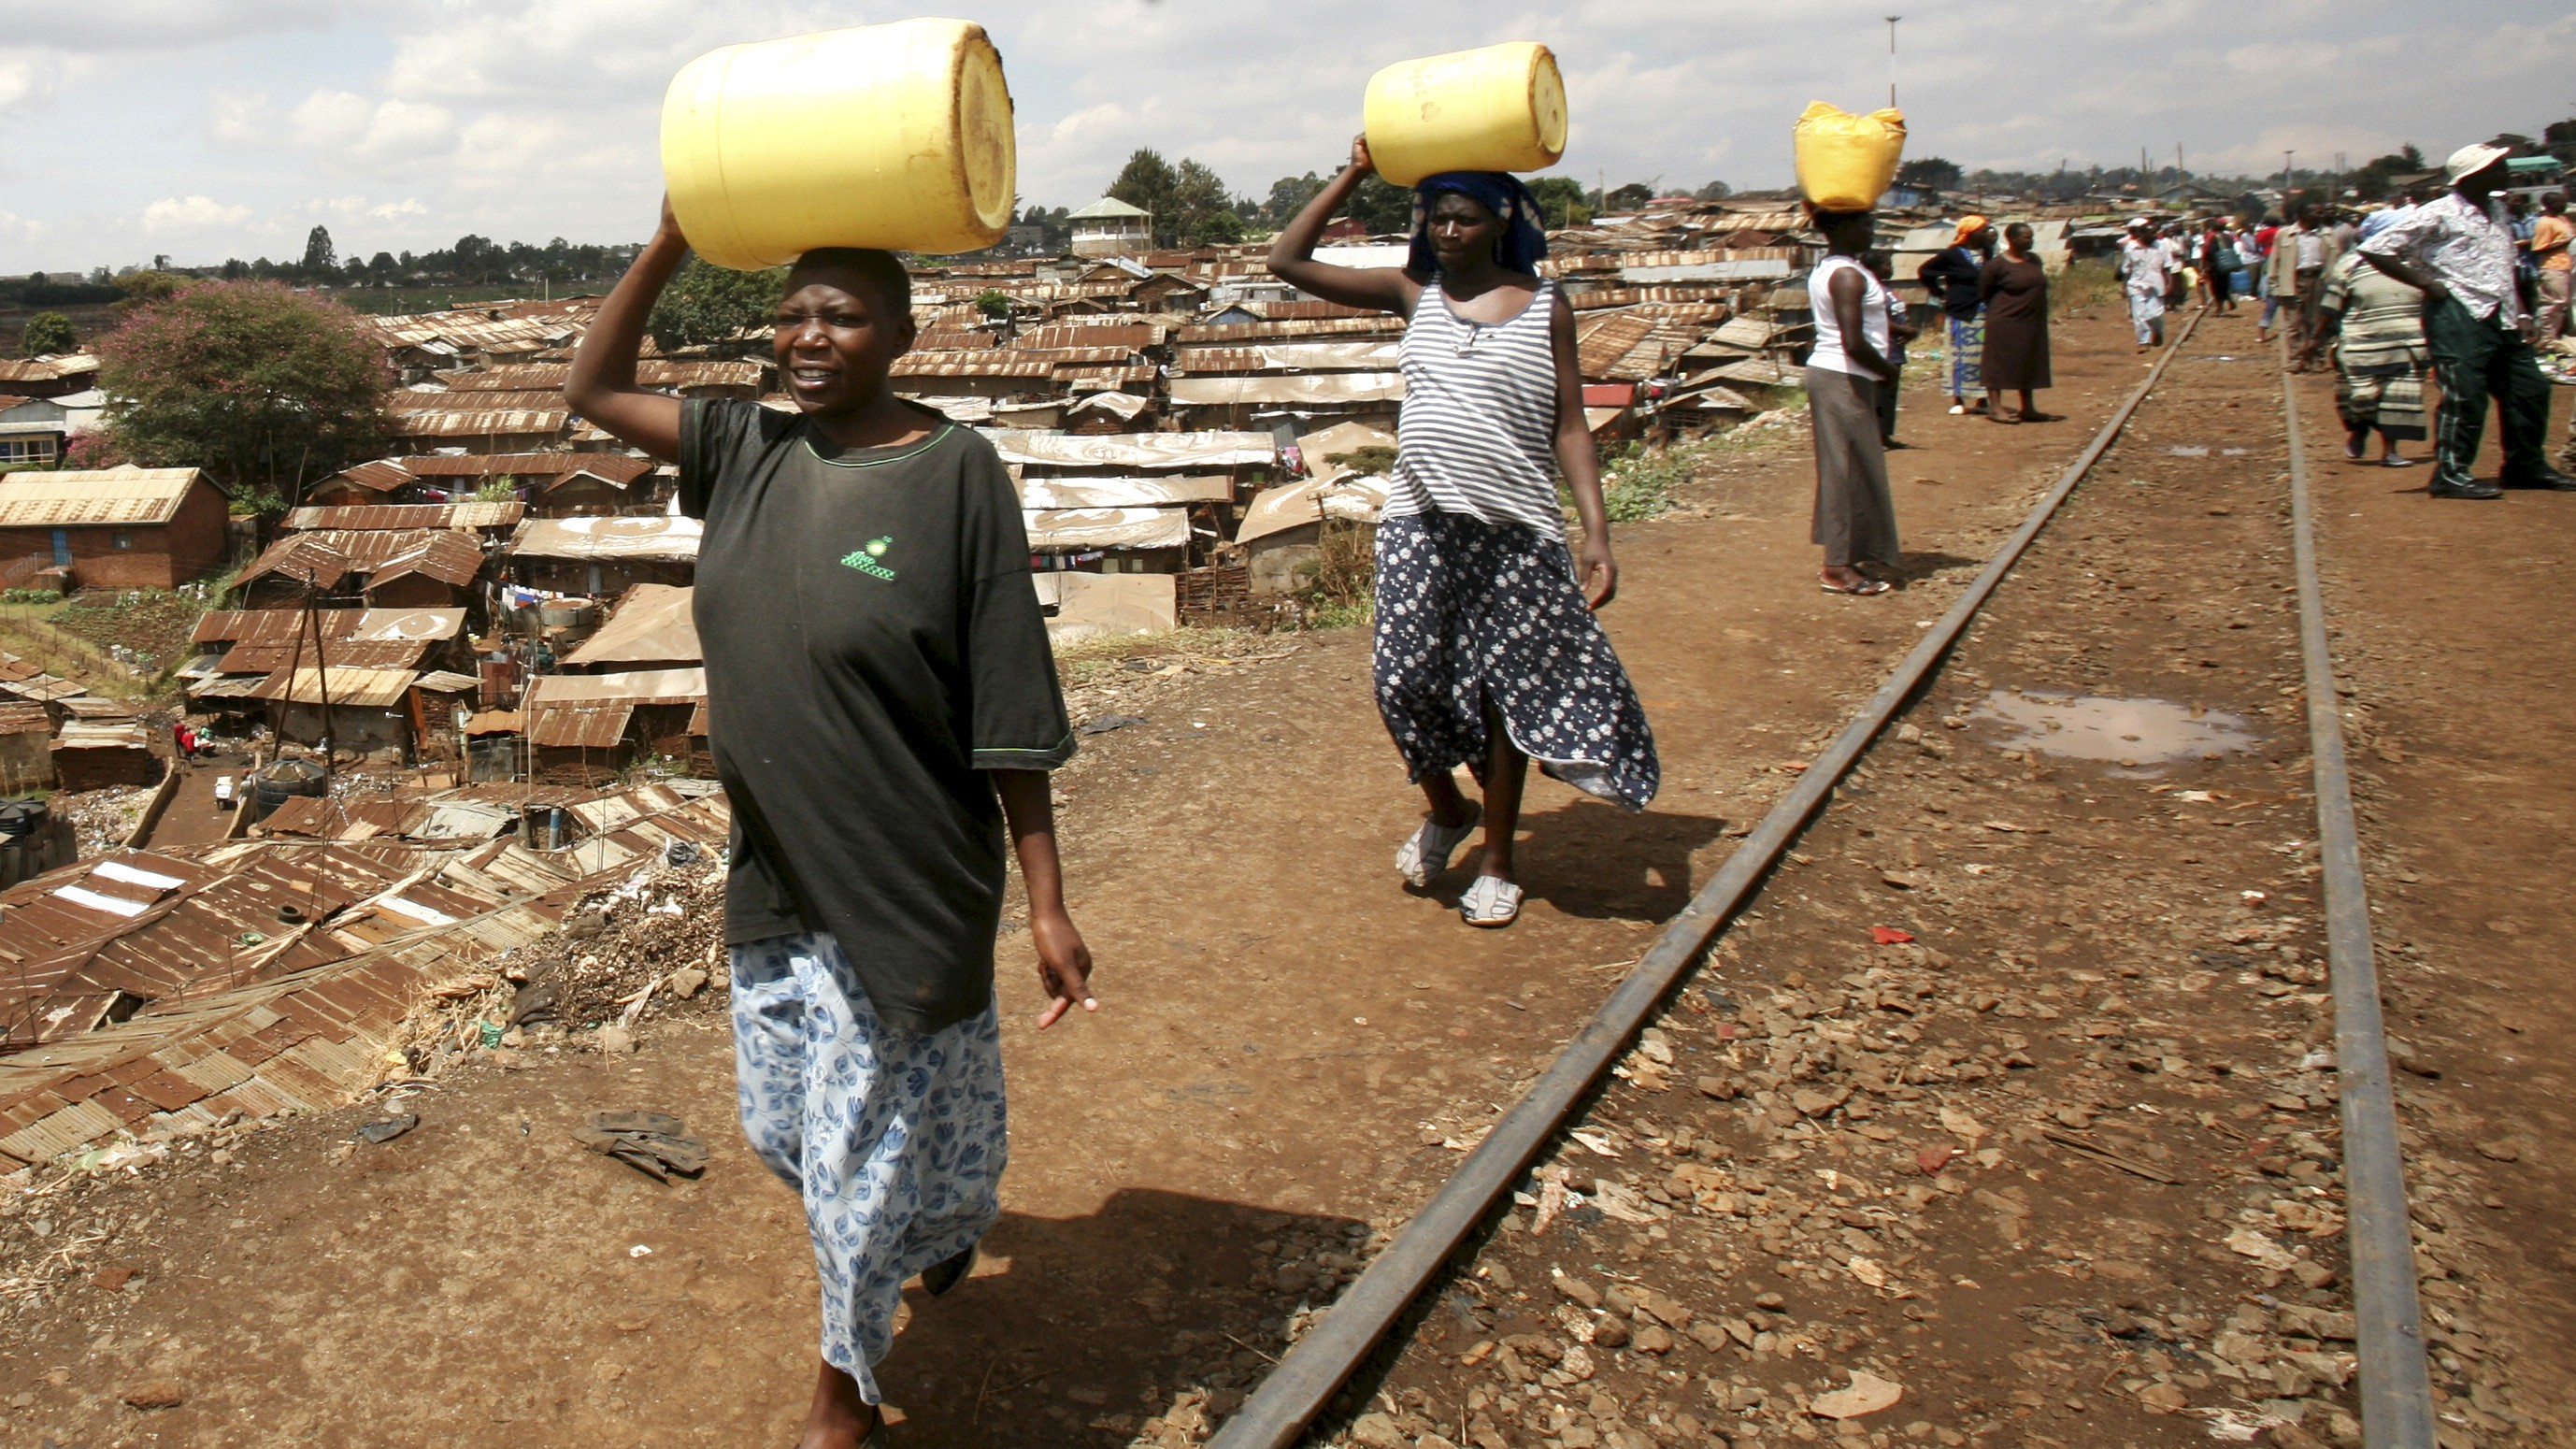 Women carry jerry-cans of water on their heads as they walk to Kibera slums in Kenya's capital Nairobi.